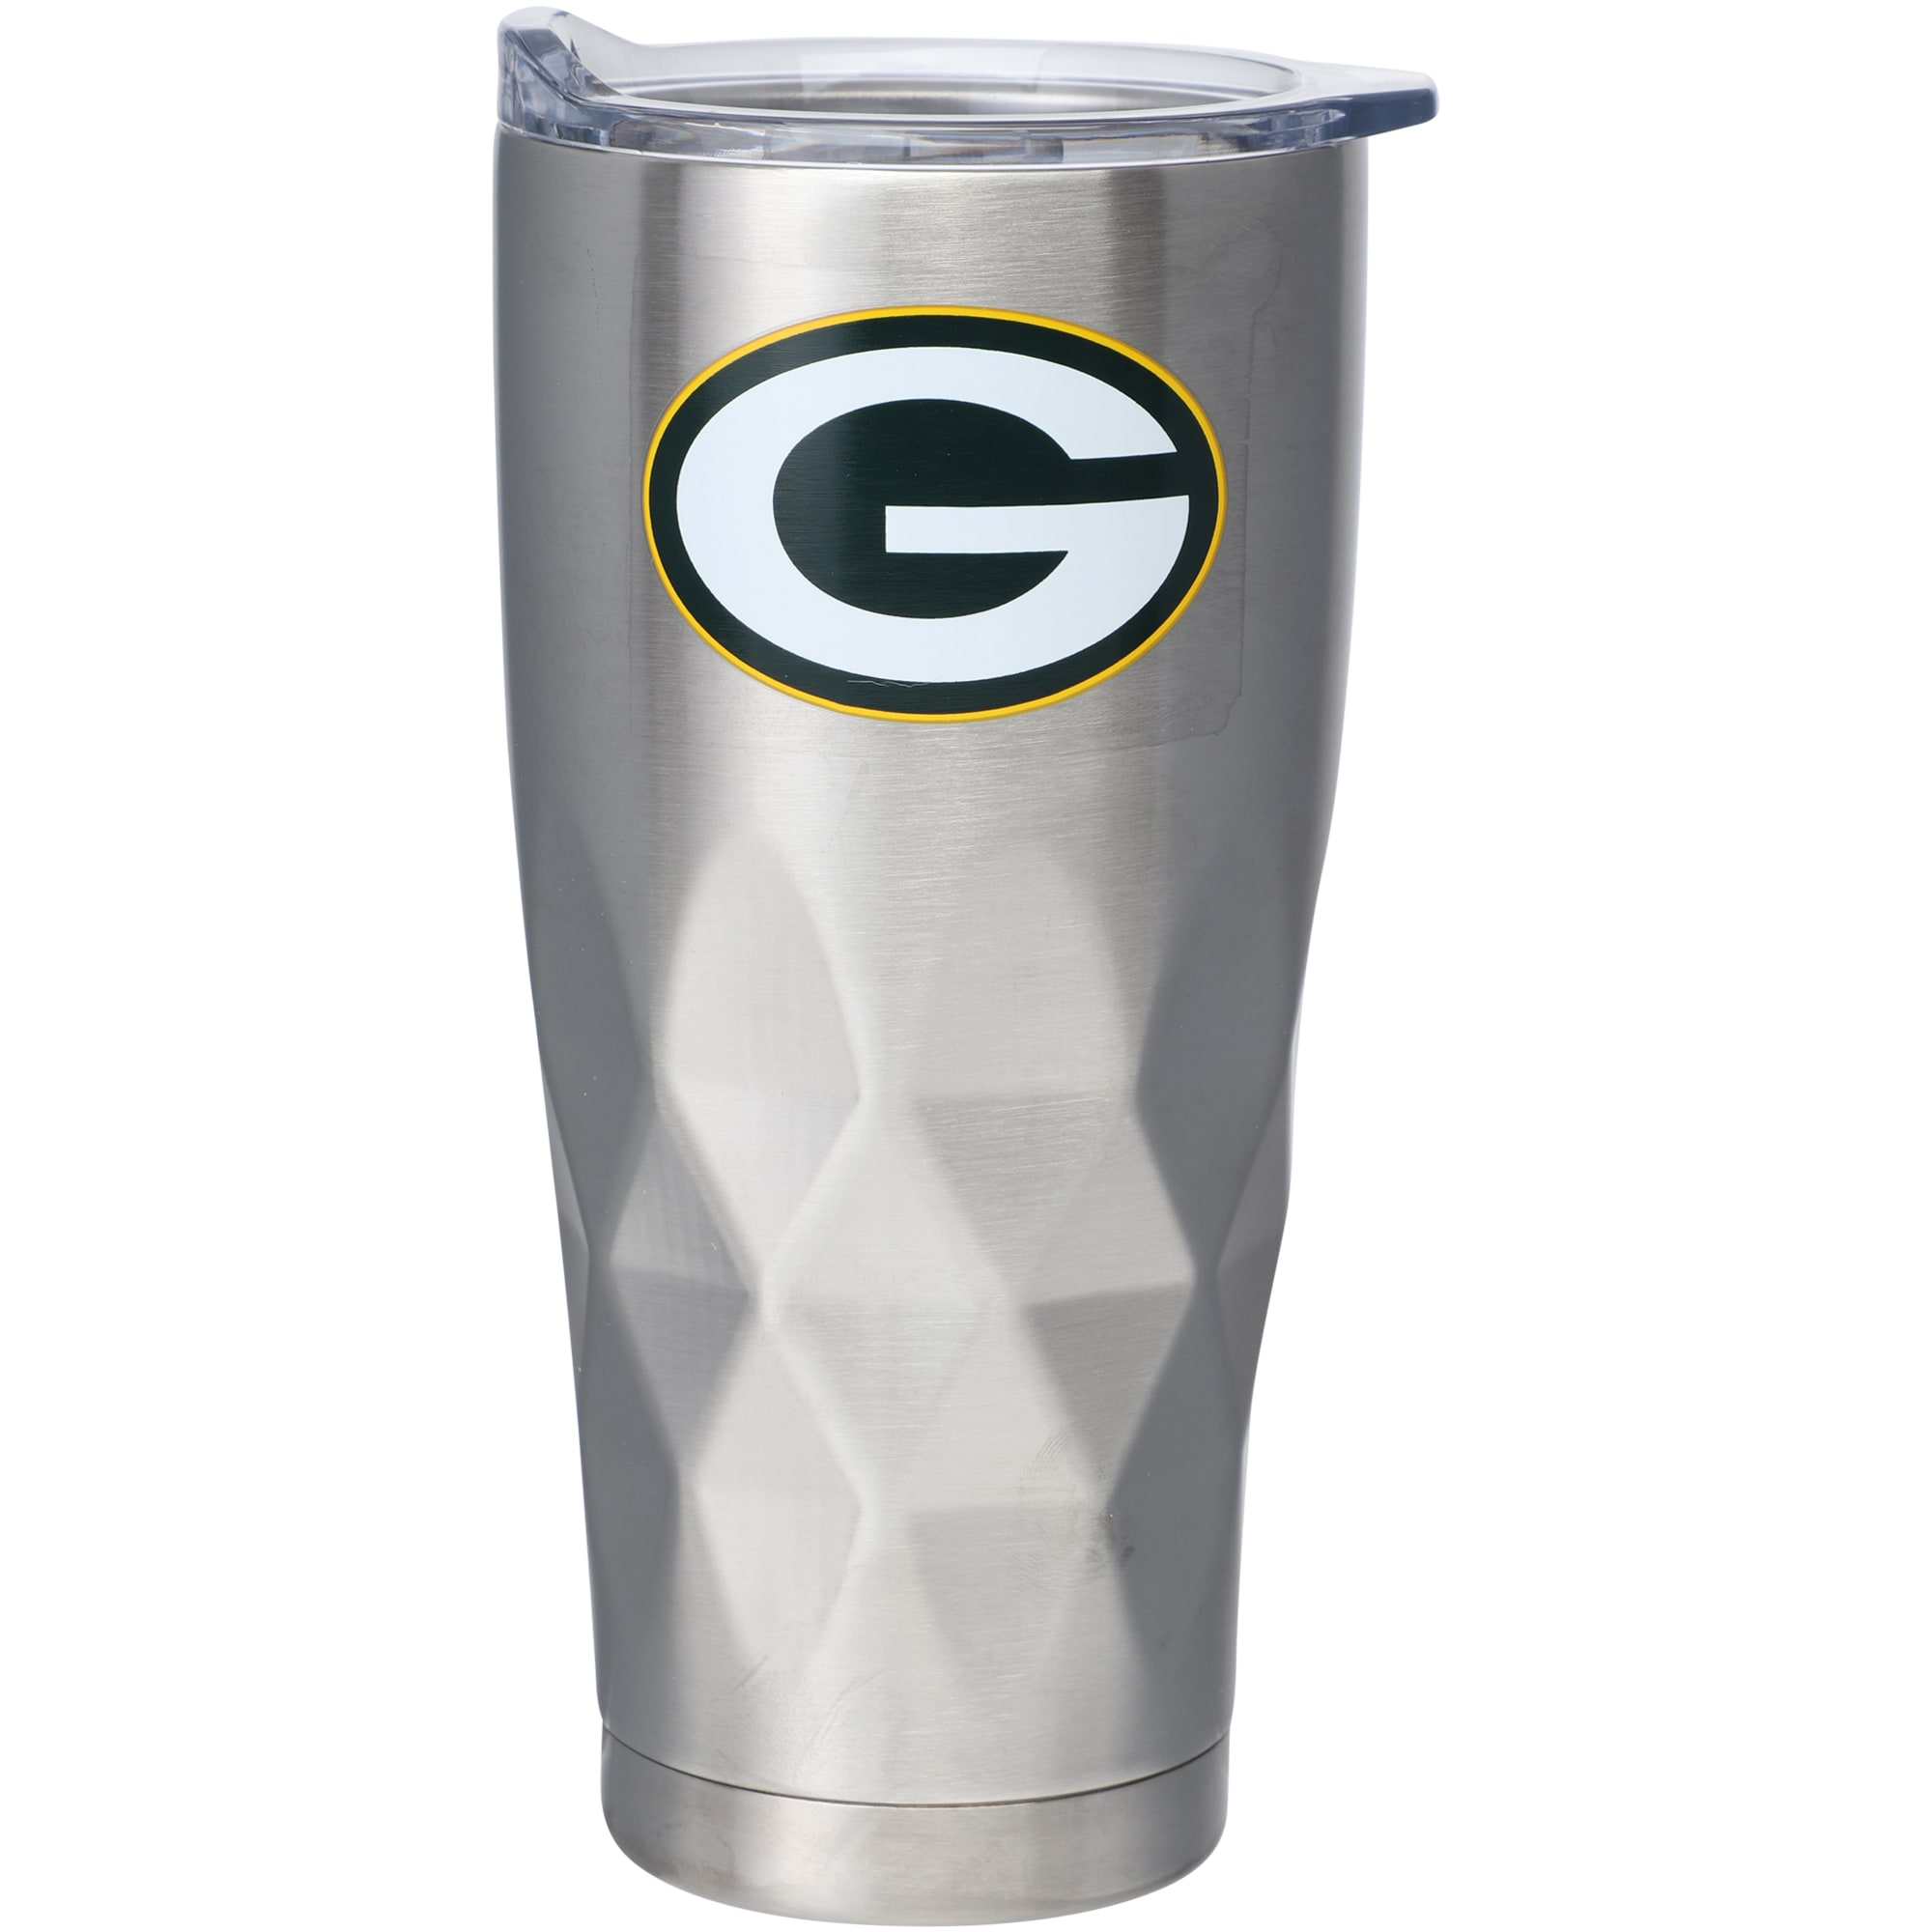 Green Bay Packers 22oz. Diamond Bottom Stainless Steel Tumbler